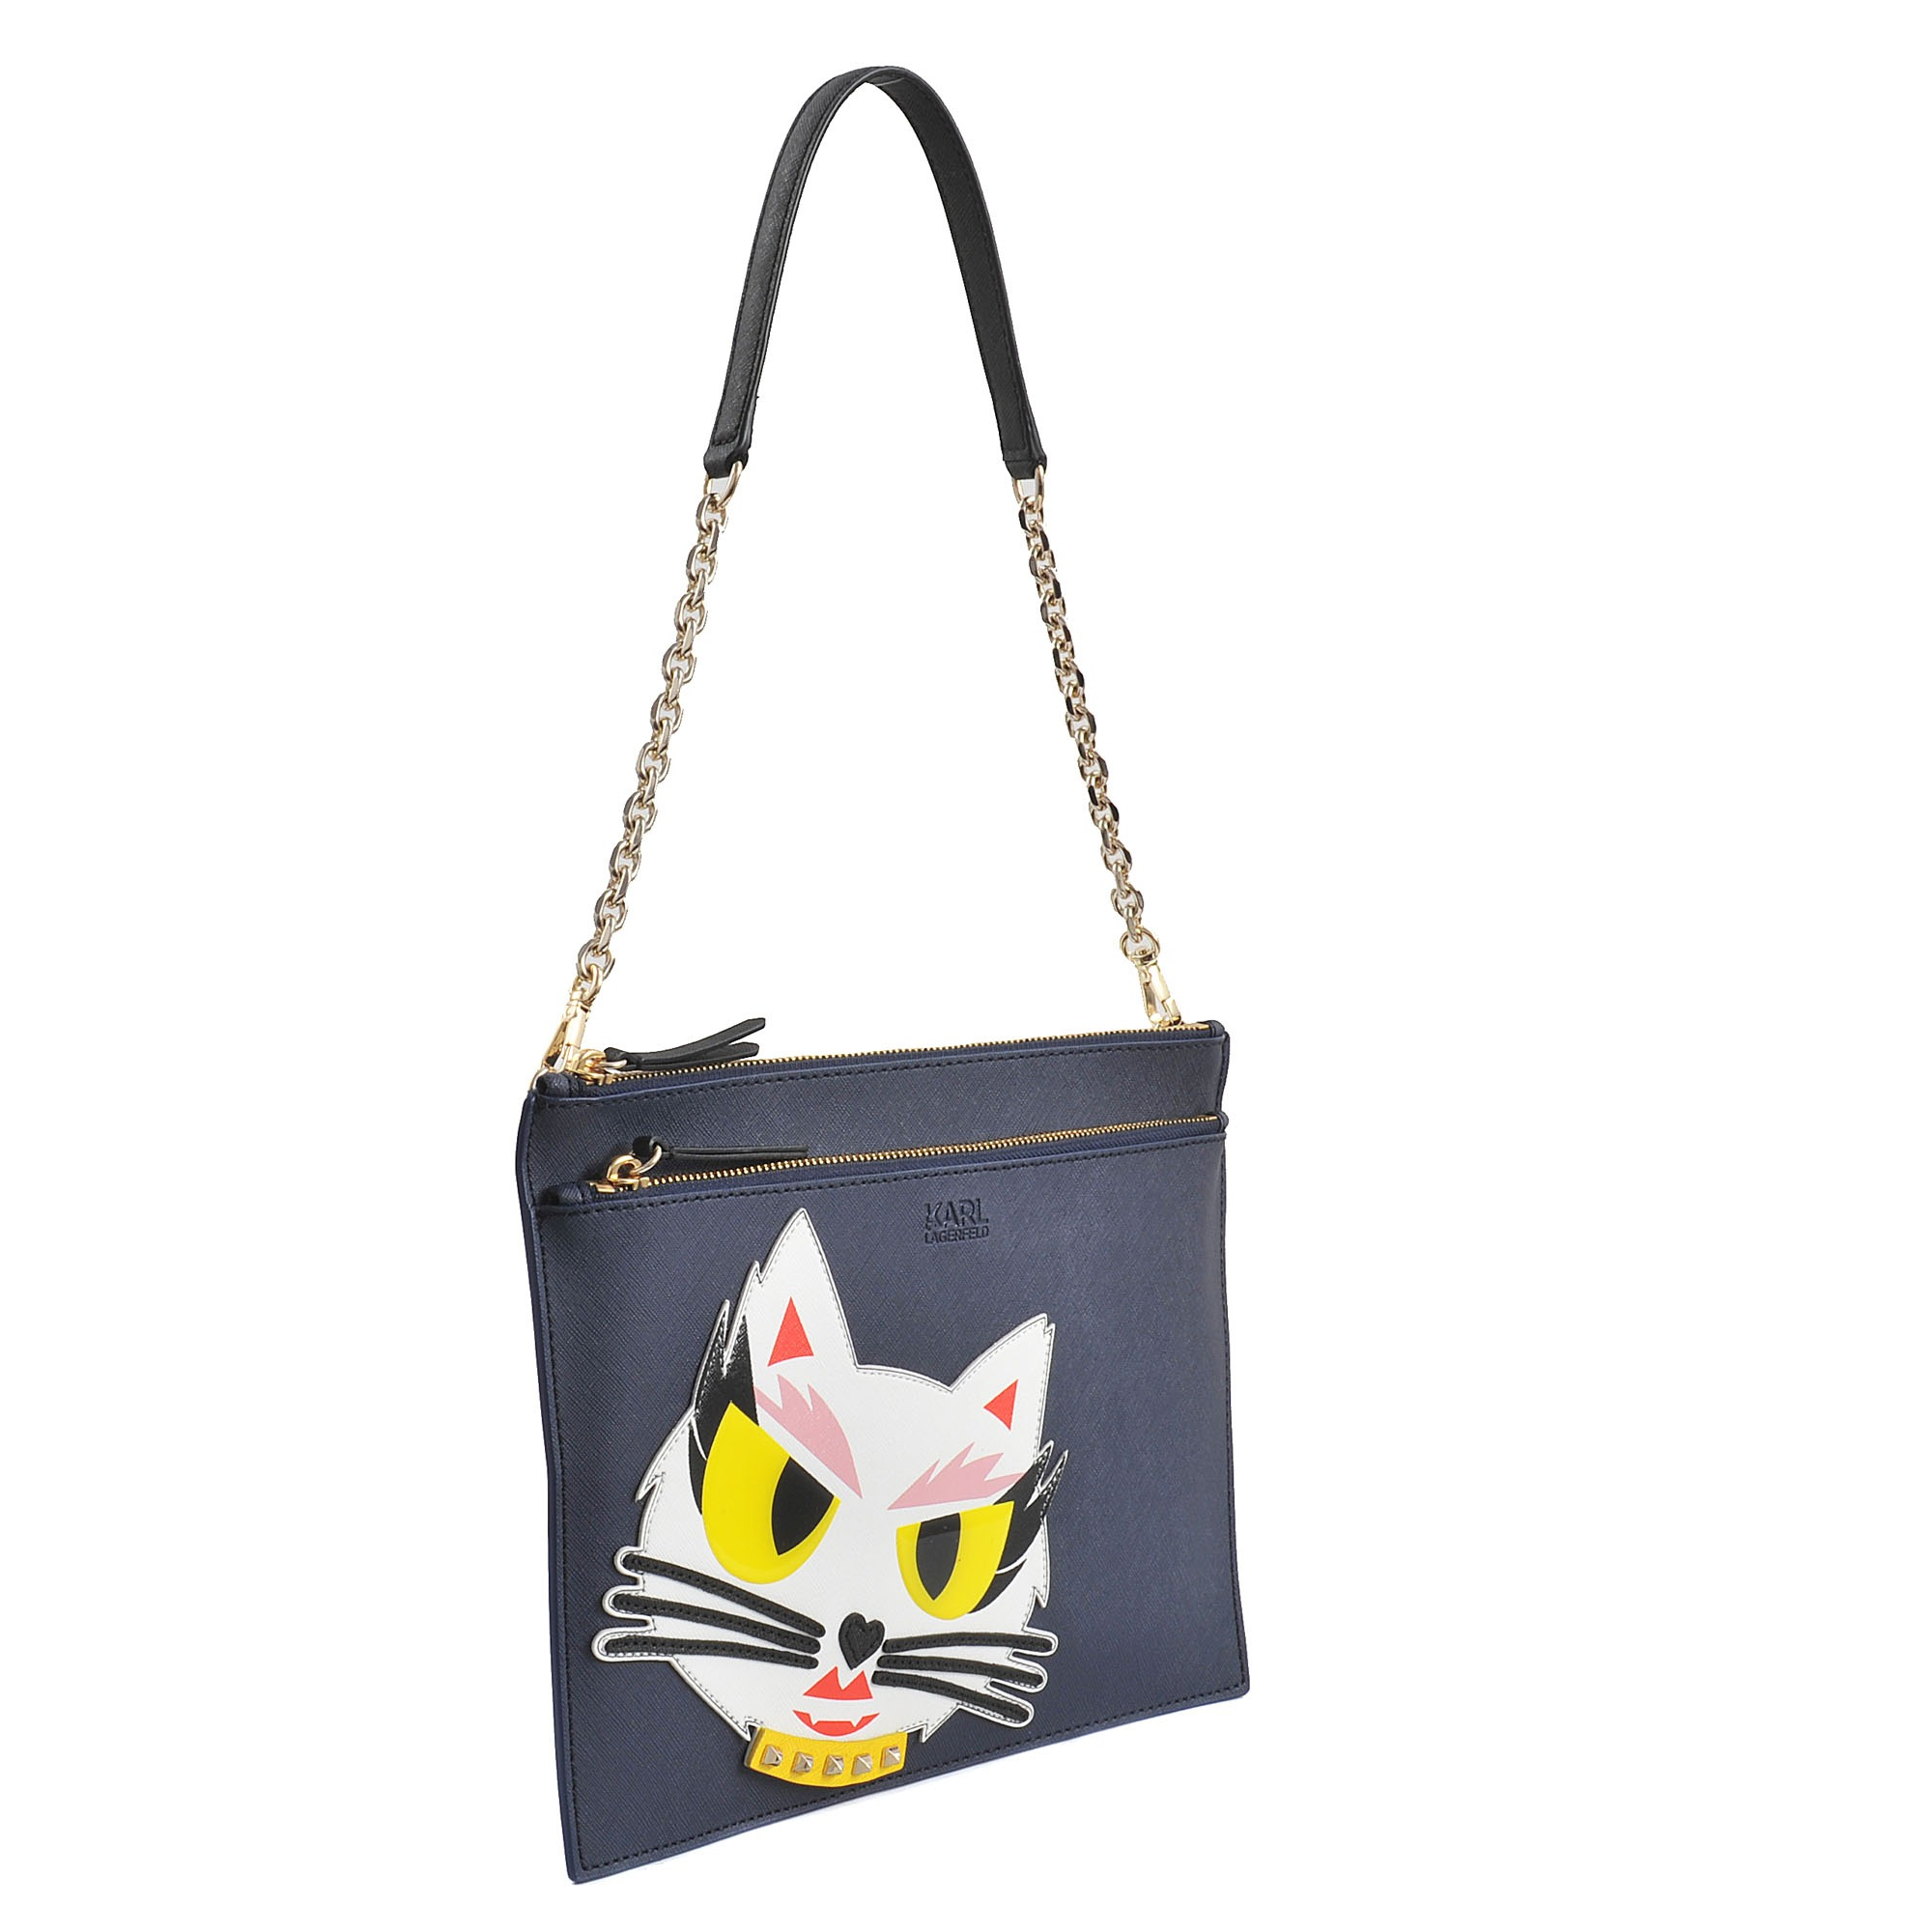 to wear - Lagerfeld karl monster choupette collection video